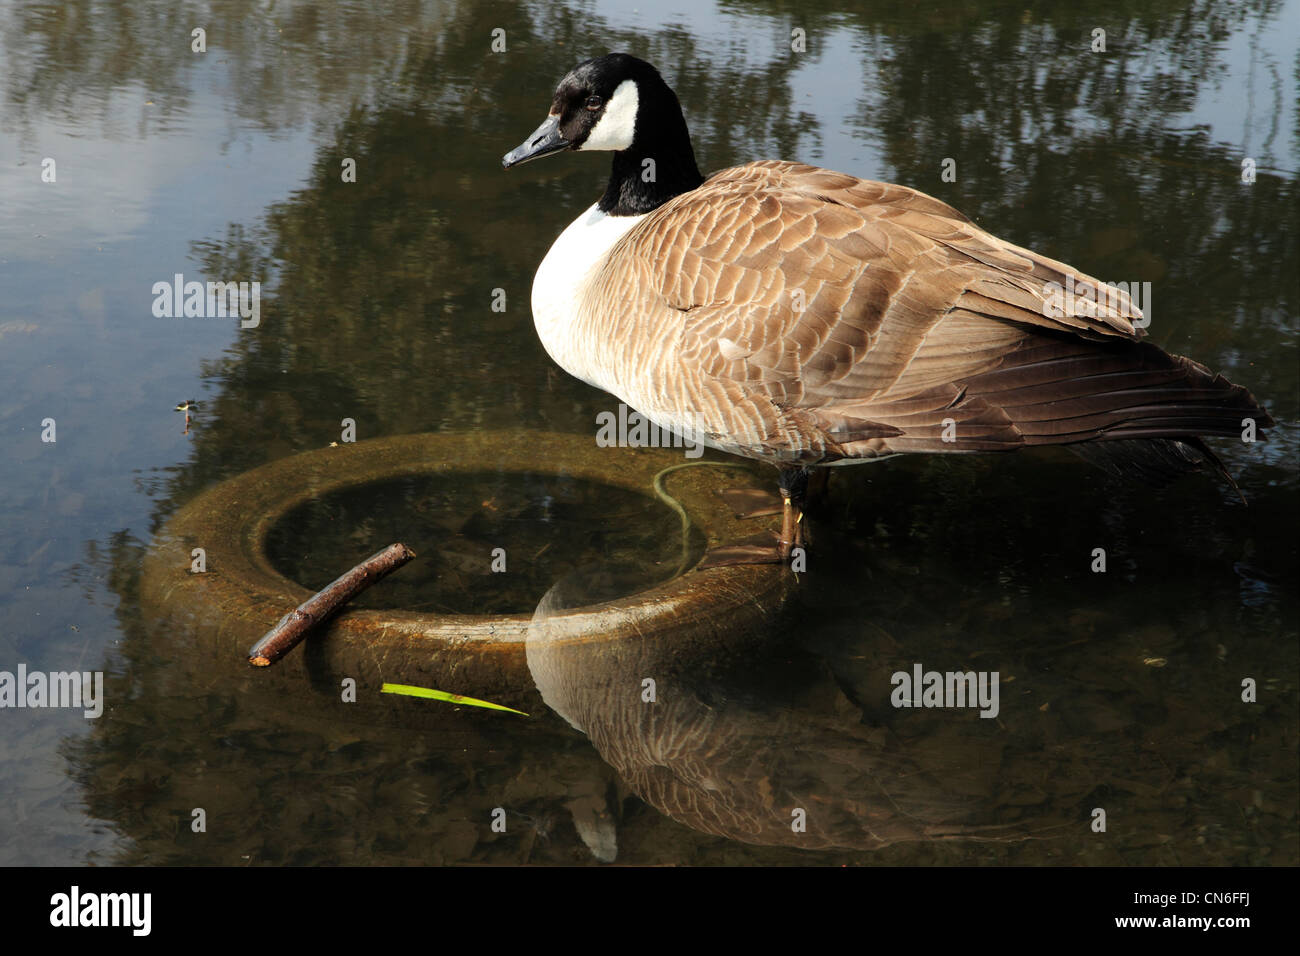 Canada Goose (Branta canadensis) standing on submerged tyre in stream, Kent, UK - Stock Image